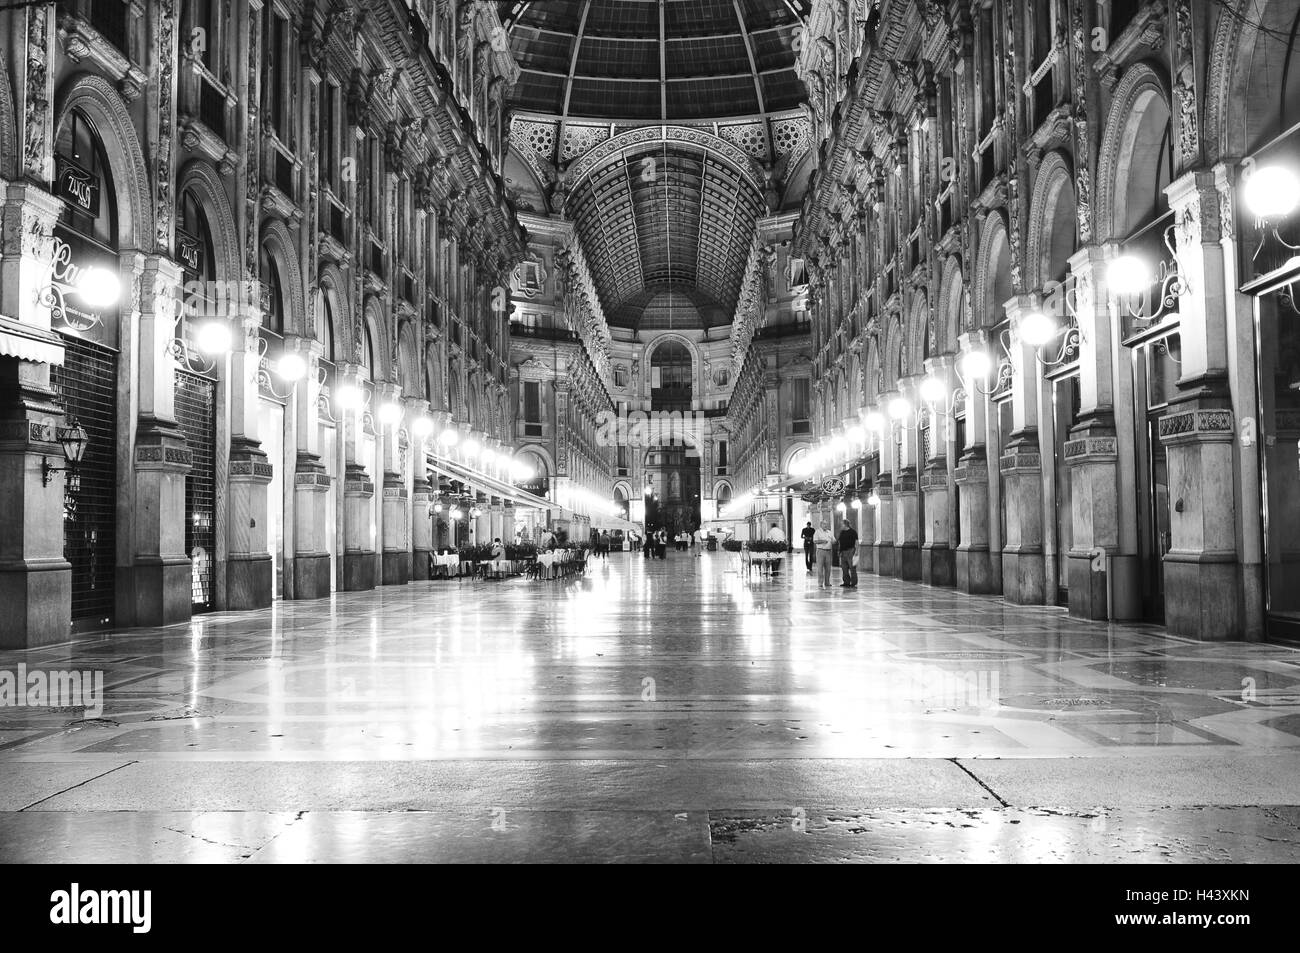 Italy, Milan, shopping arcade, Galleria Vittorio Emanuele 2, passersby, evening, s/w, - Stock Image